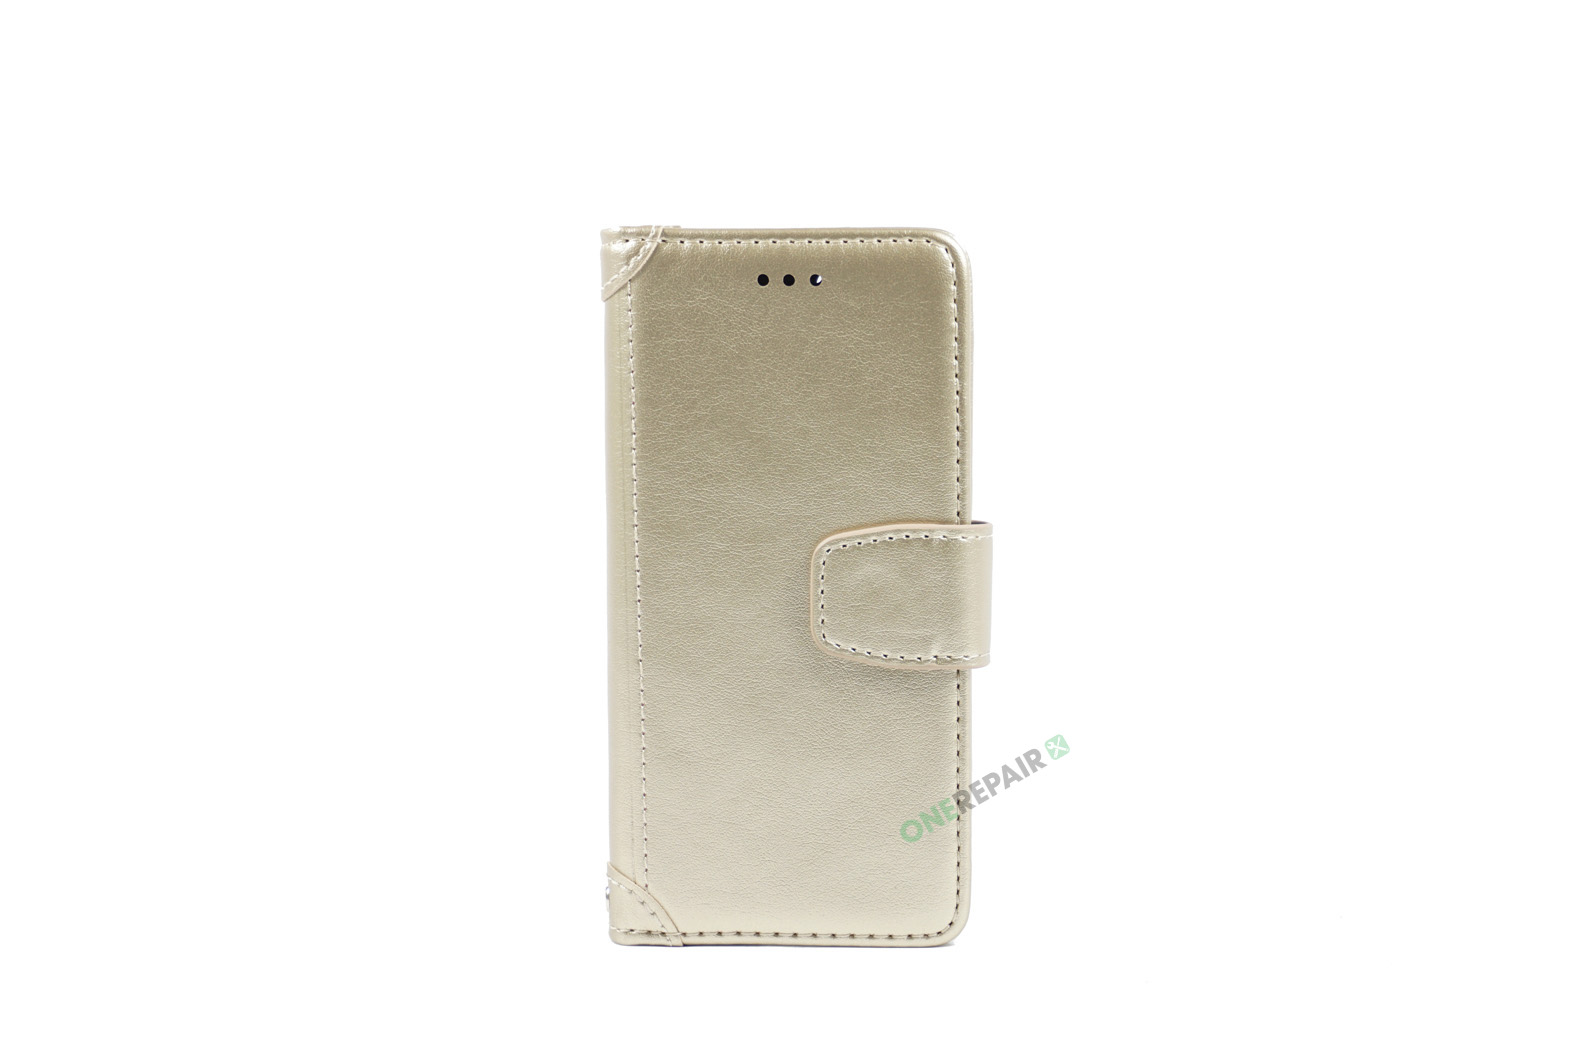 350790_iPhone_7_8_Luxury_Flipcover_Cover_Lyseroed_Guld_OneRepair_WM_00001